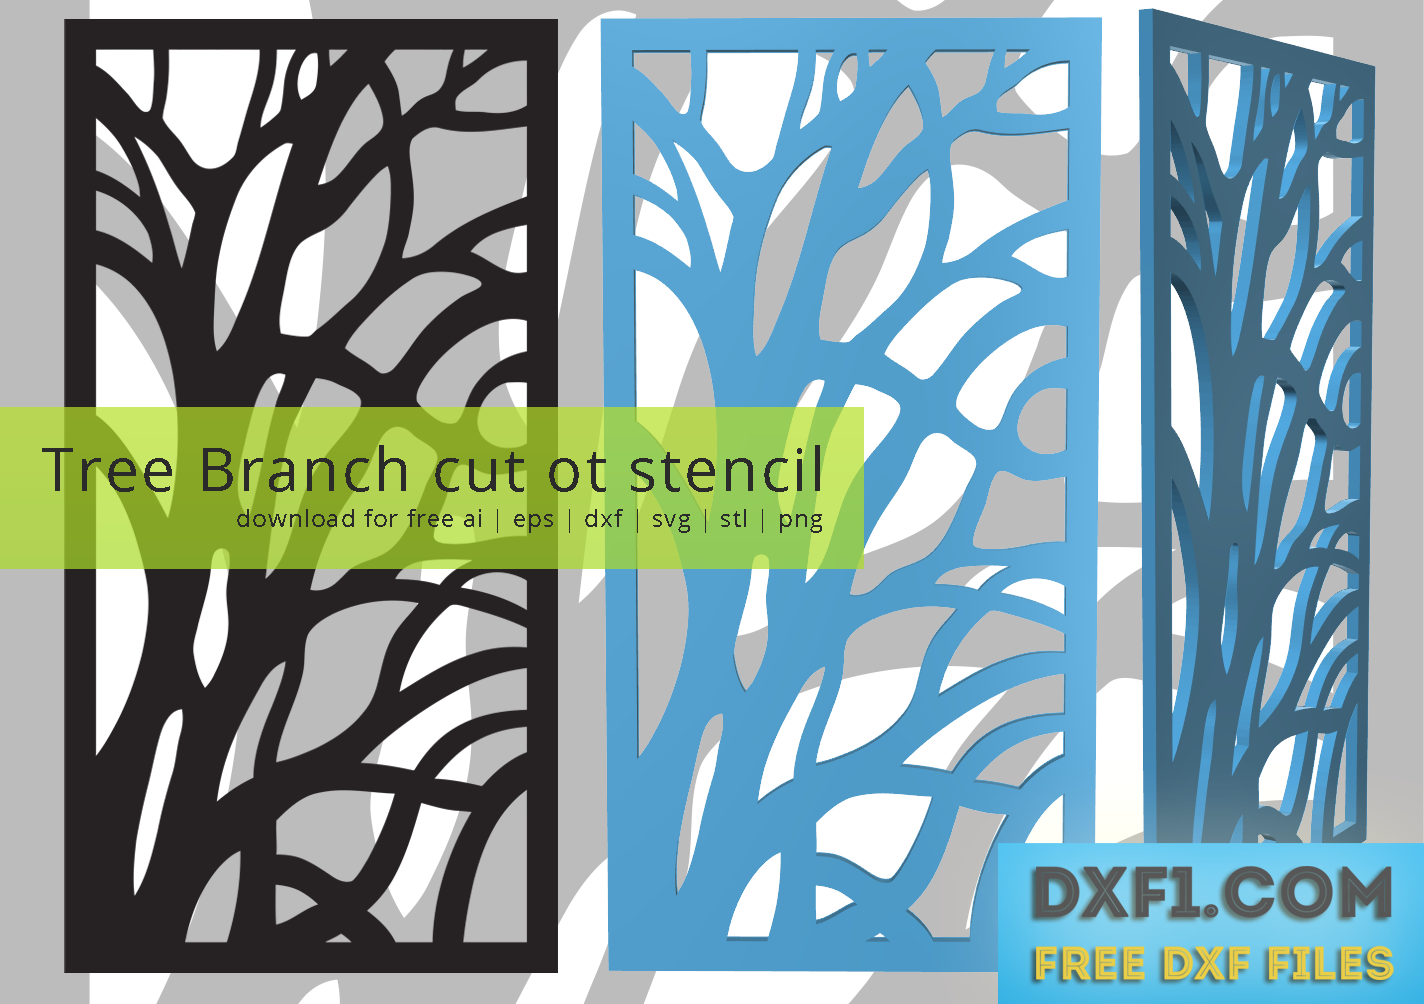 cut panels free dxf files free cad software dxf1com